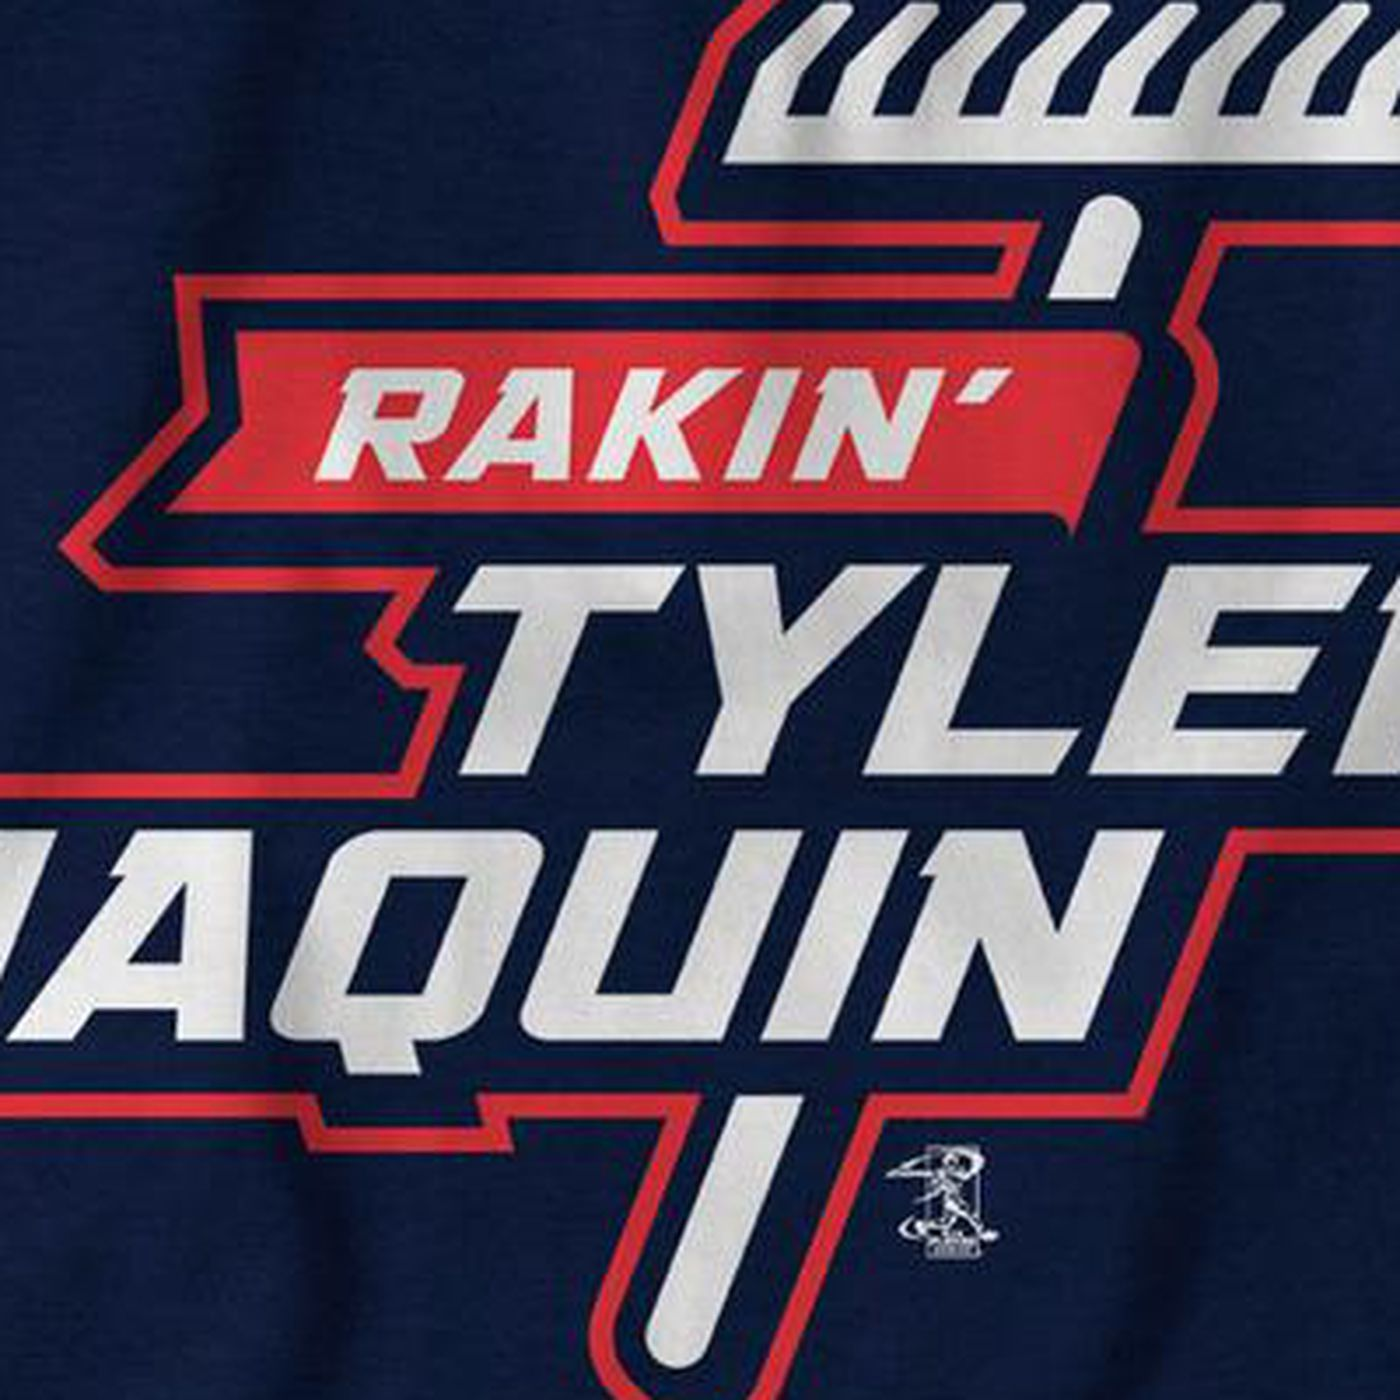 wholesale dealer 6b568 191d8 Tyler Naquin is raking, here's a shirt to prove it - Let's ...